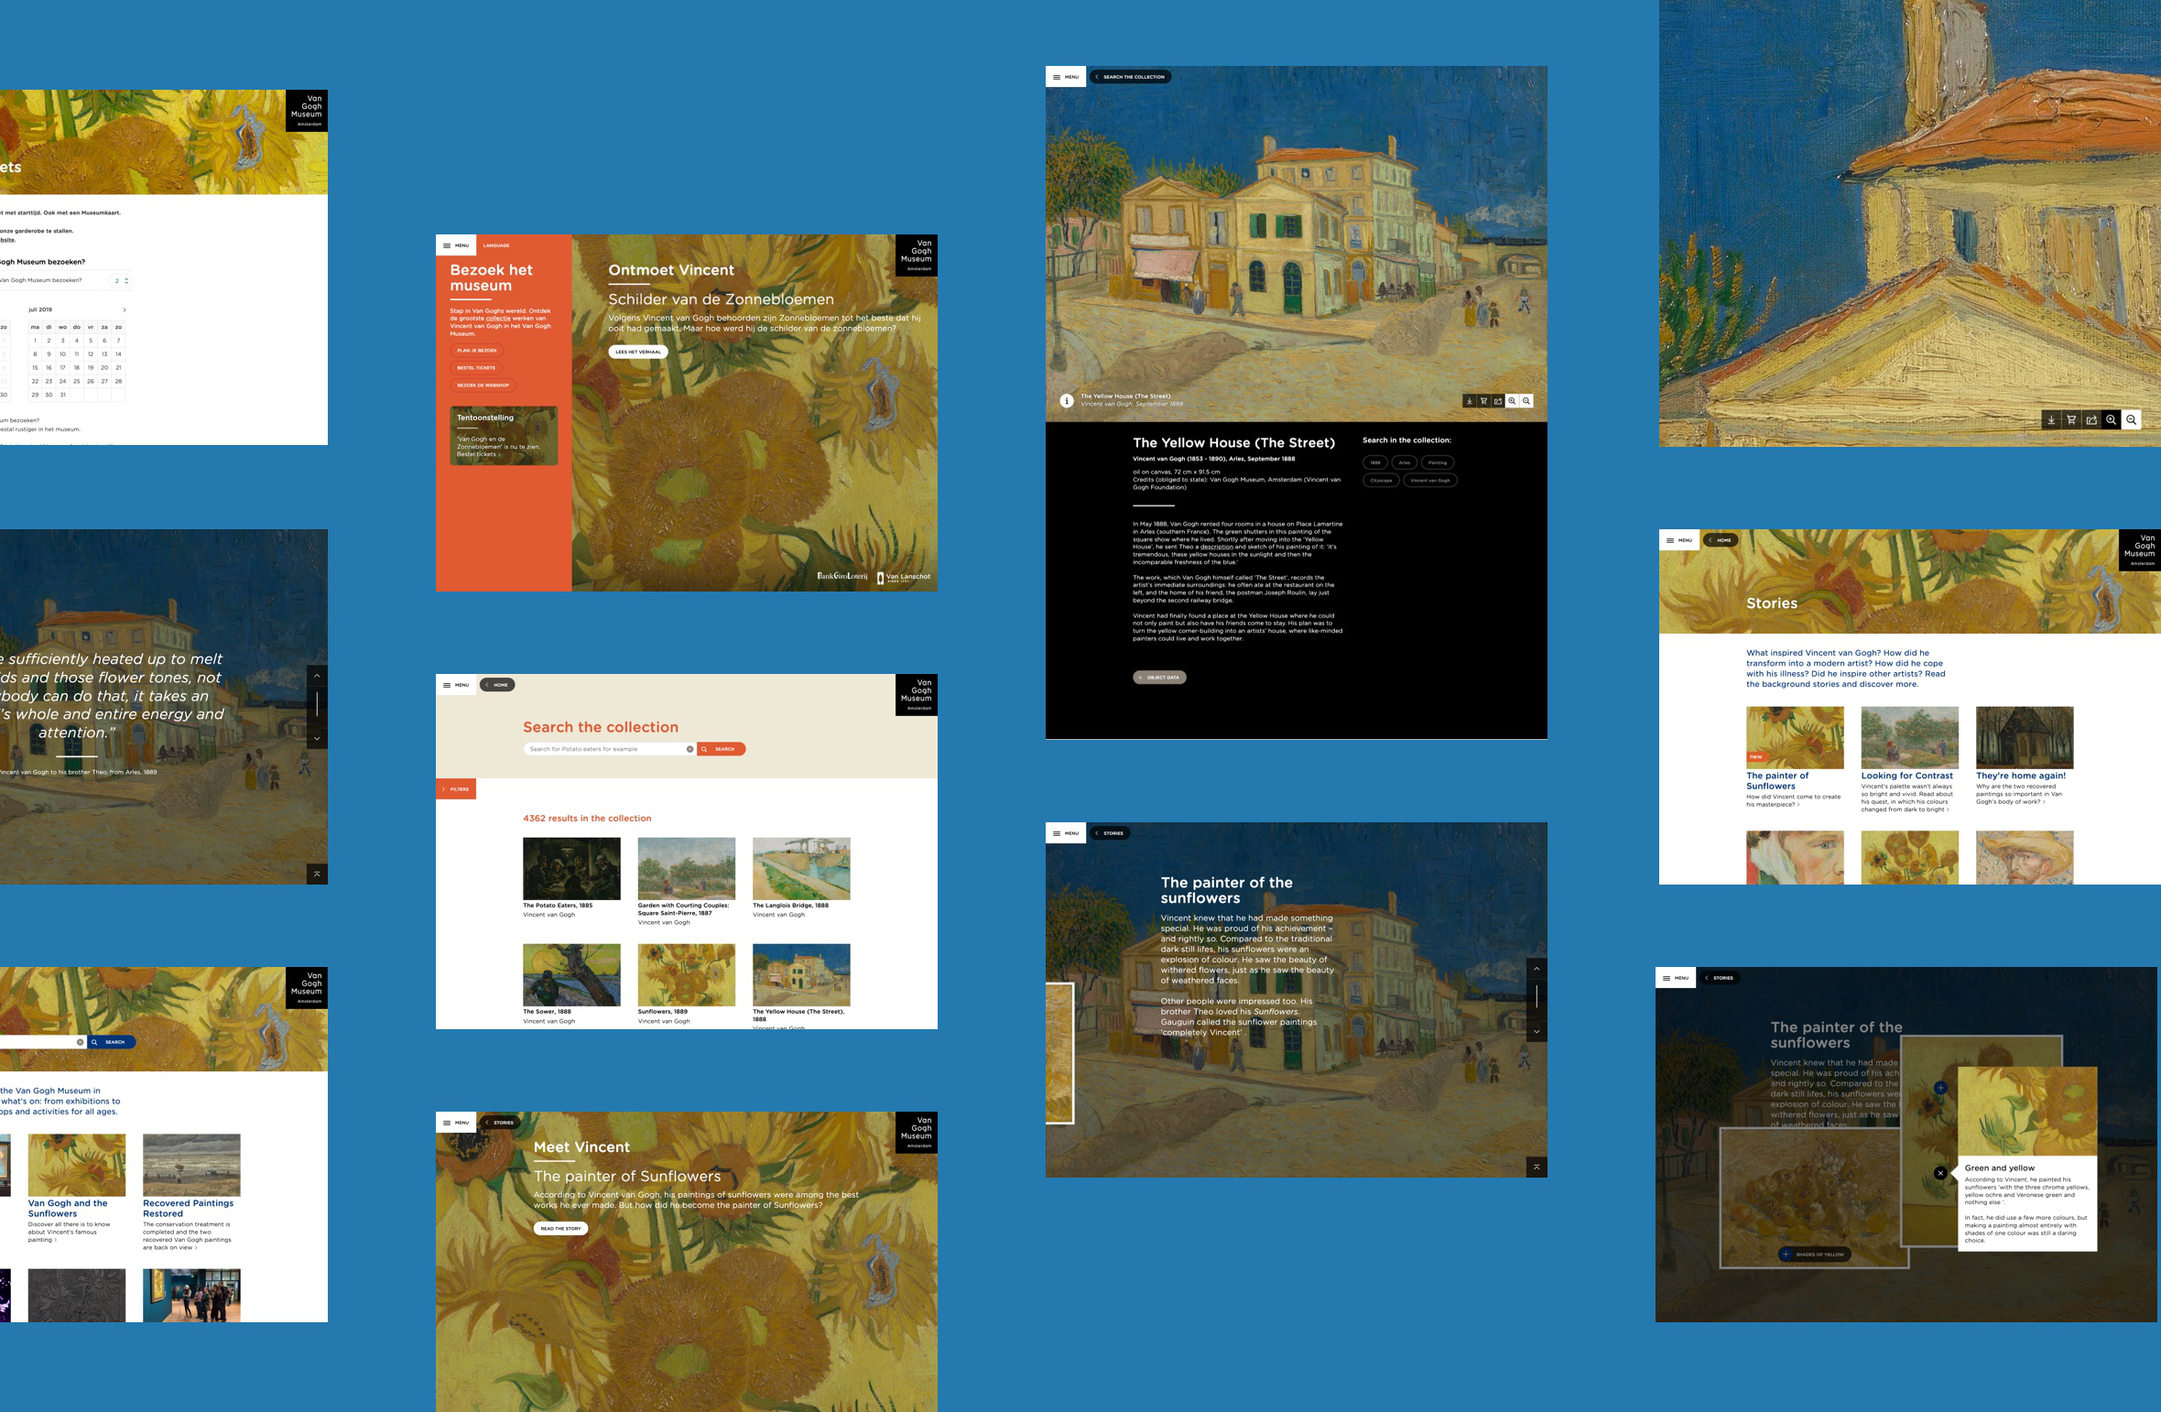 Van Gogh website design